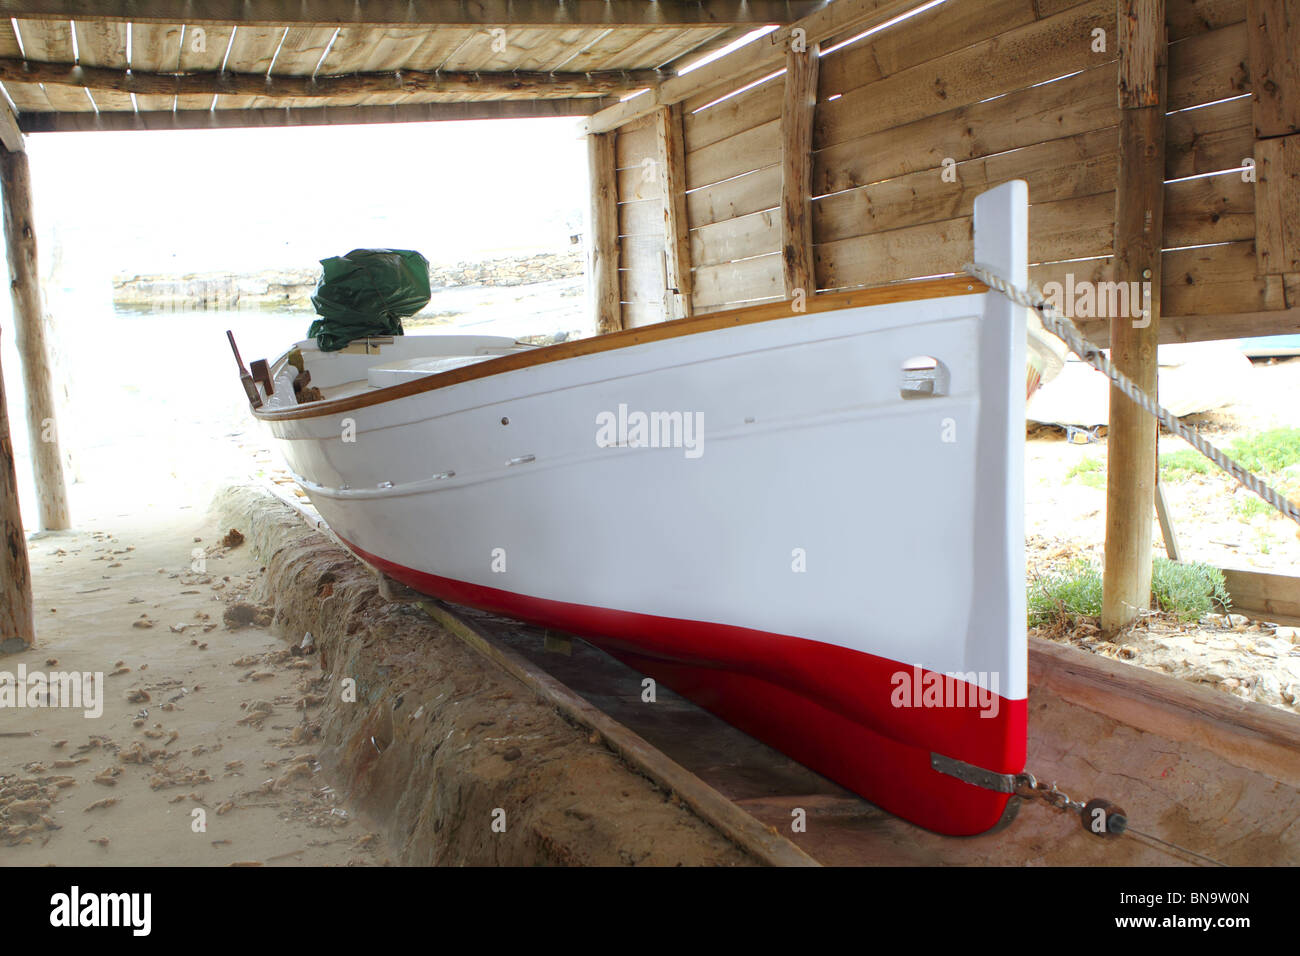 Formentera traditional boat stranded on wooden rails - Stock Image